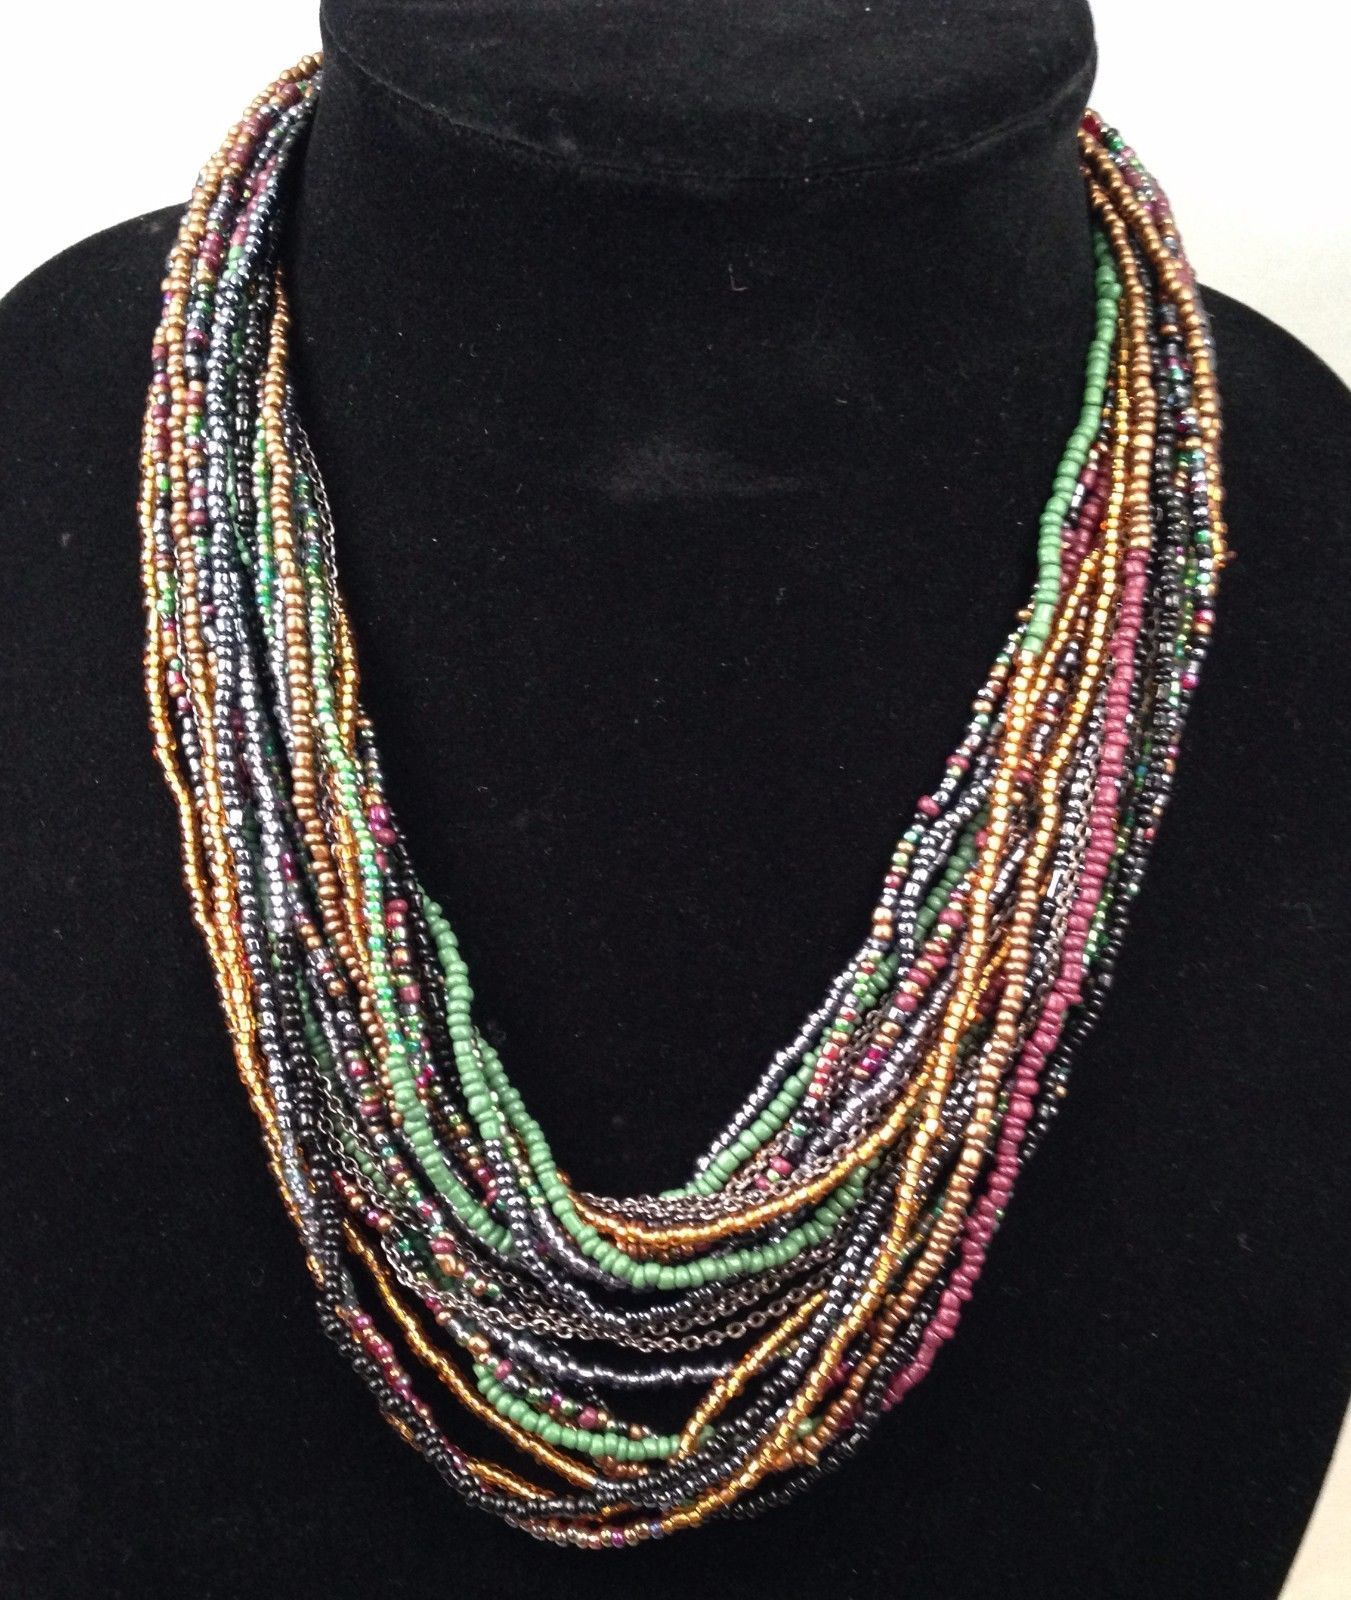 New Cookie Lee Multi Colored Glass Tiny Bead Strands Necklace Gold Turquoise